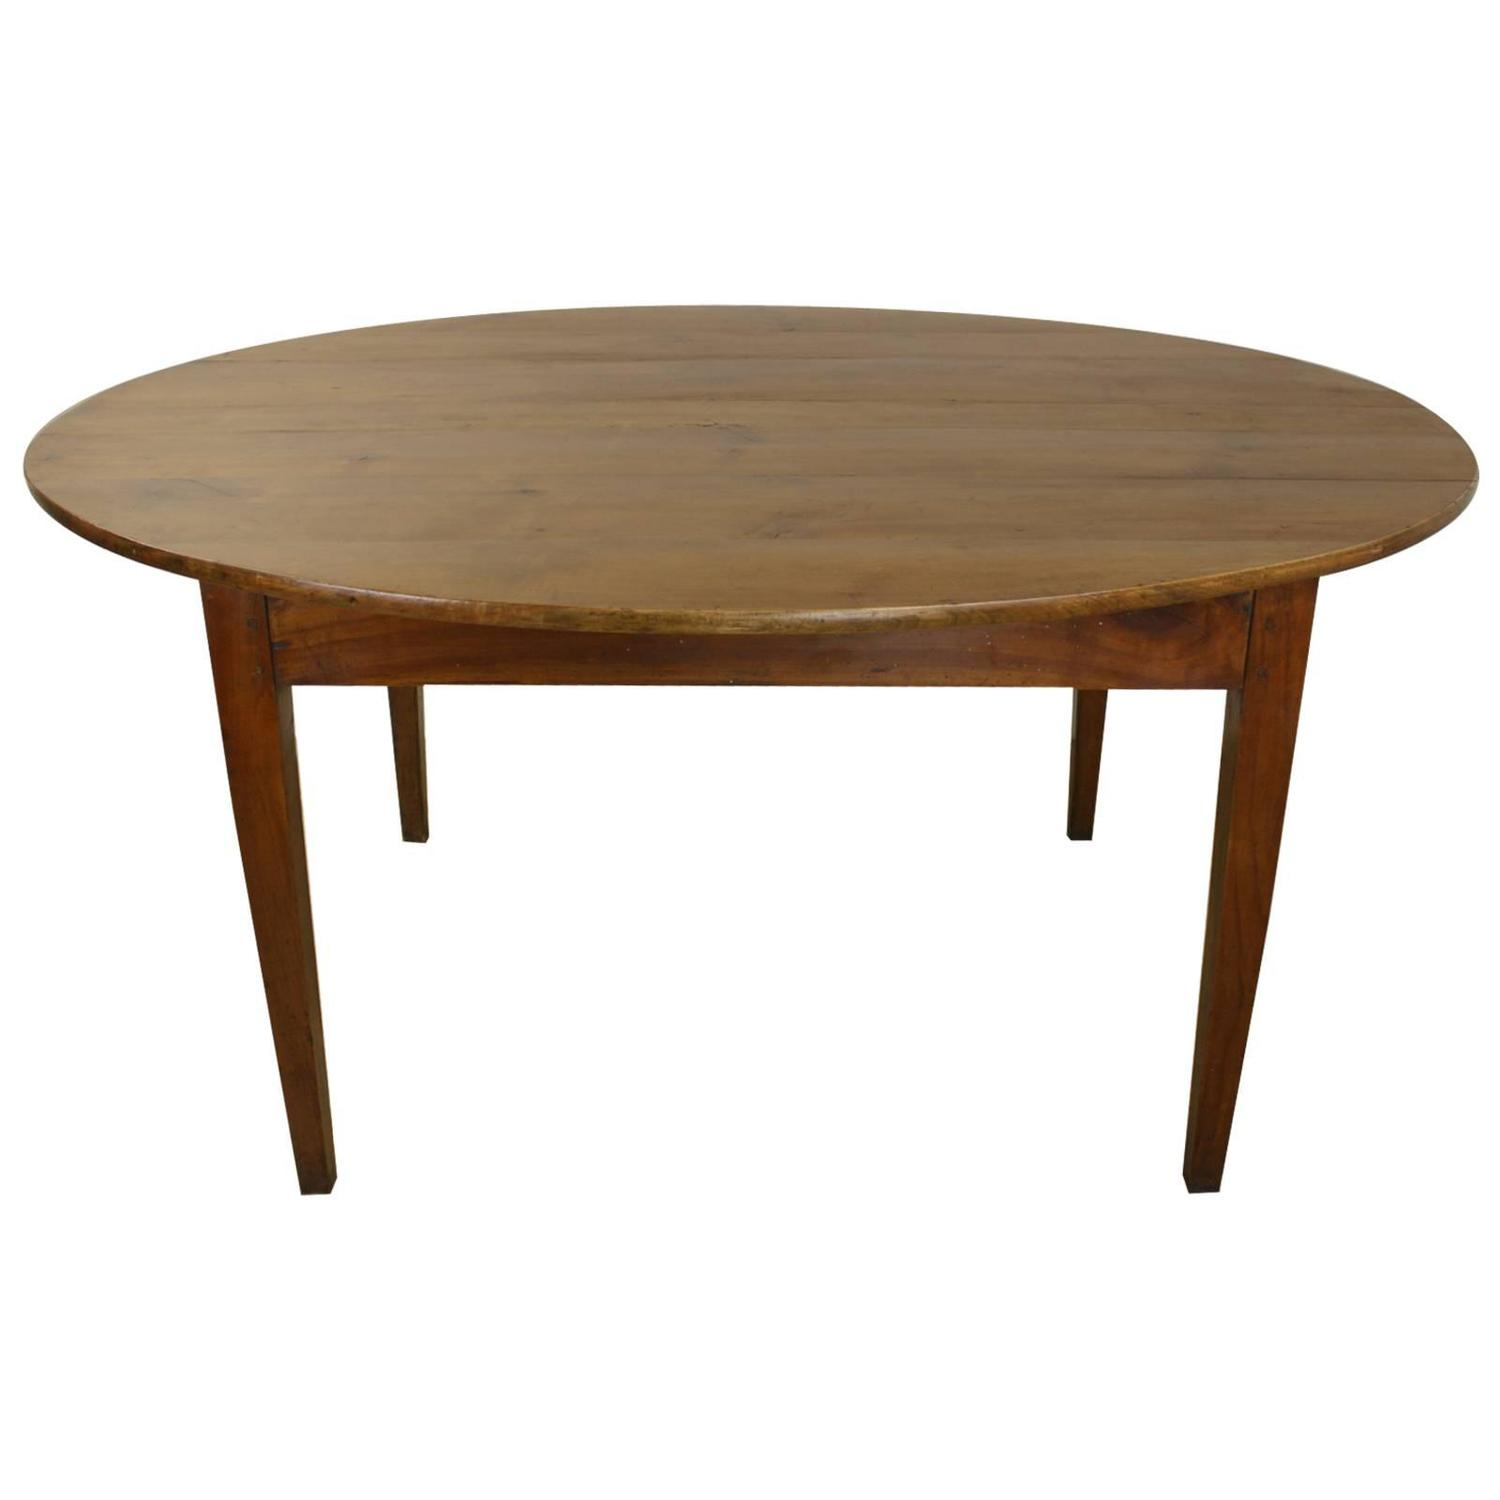 Antique french oval cherry dining table for sale at 1stdibs for Cherry dining table